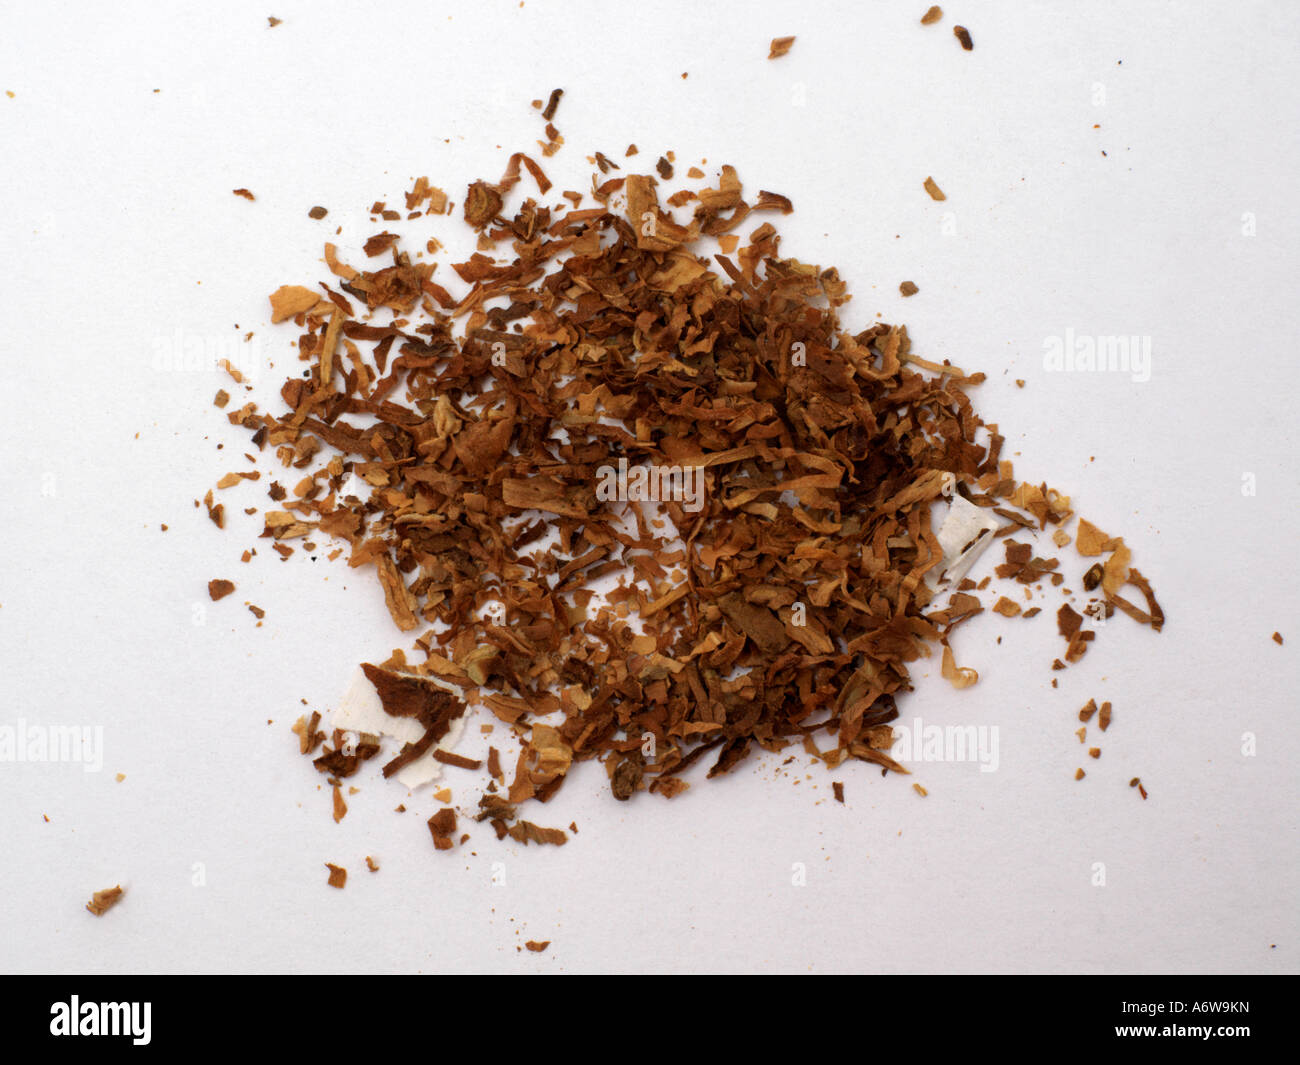 Pile of Tobacco - Stock Image